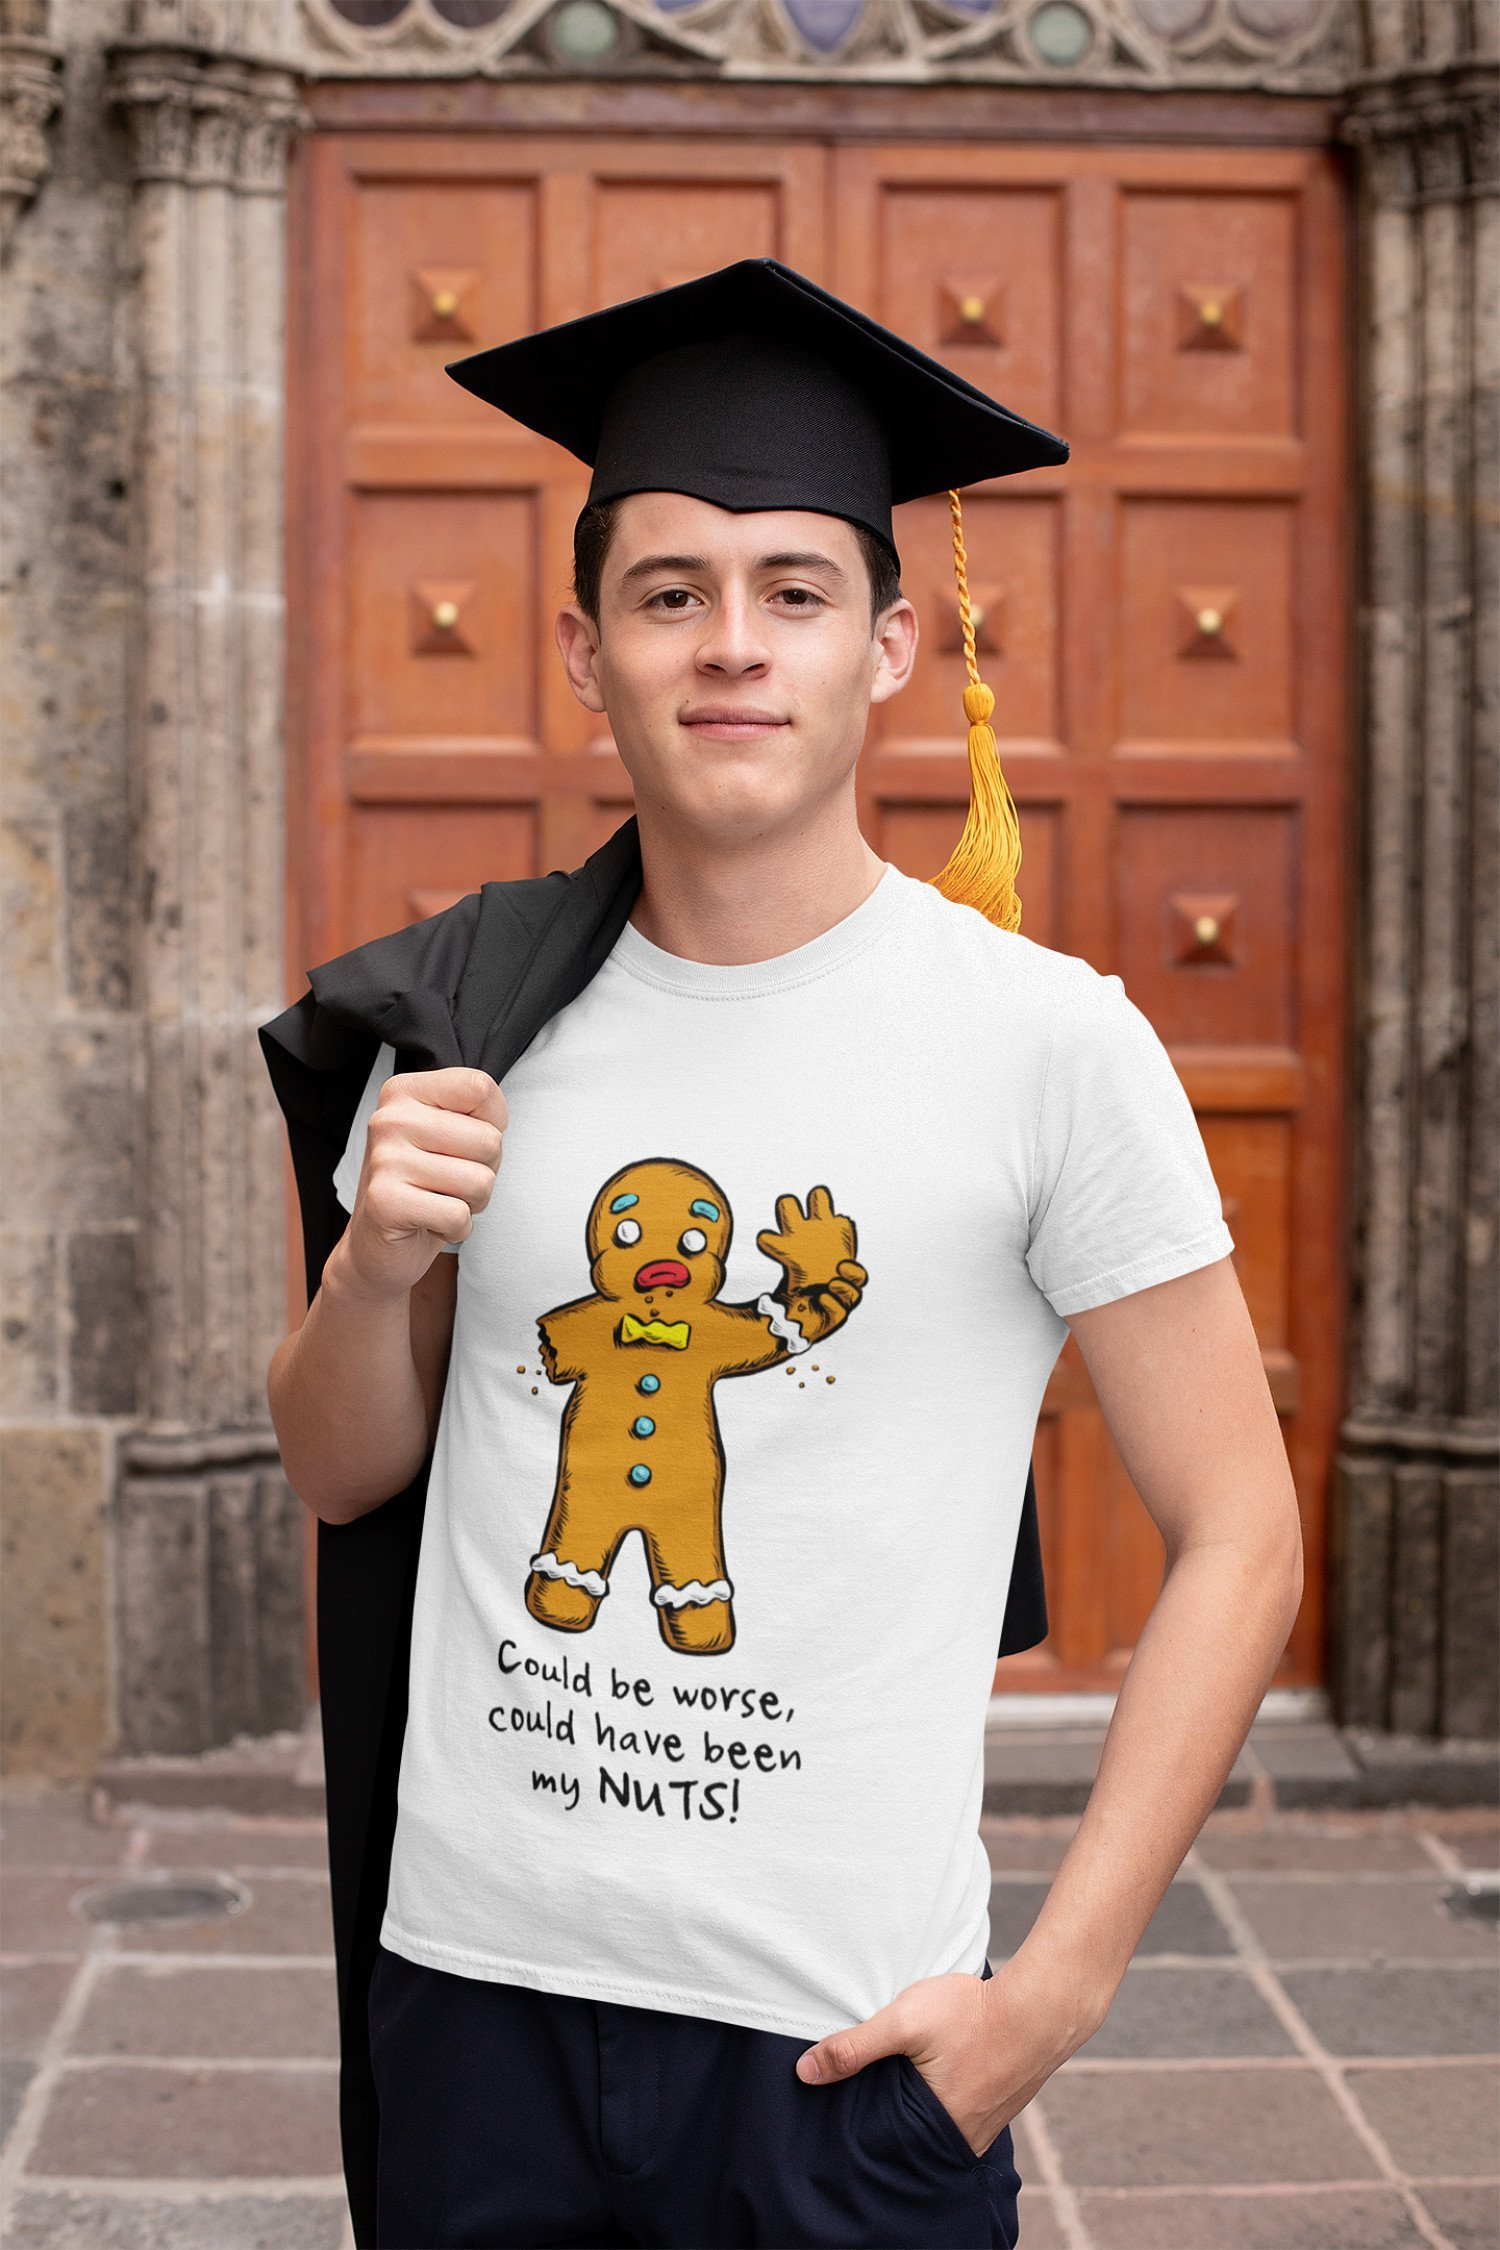 AH YES, HUMOUR T-SHIRT